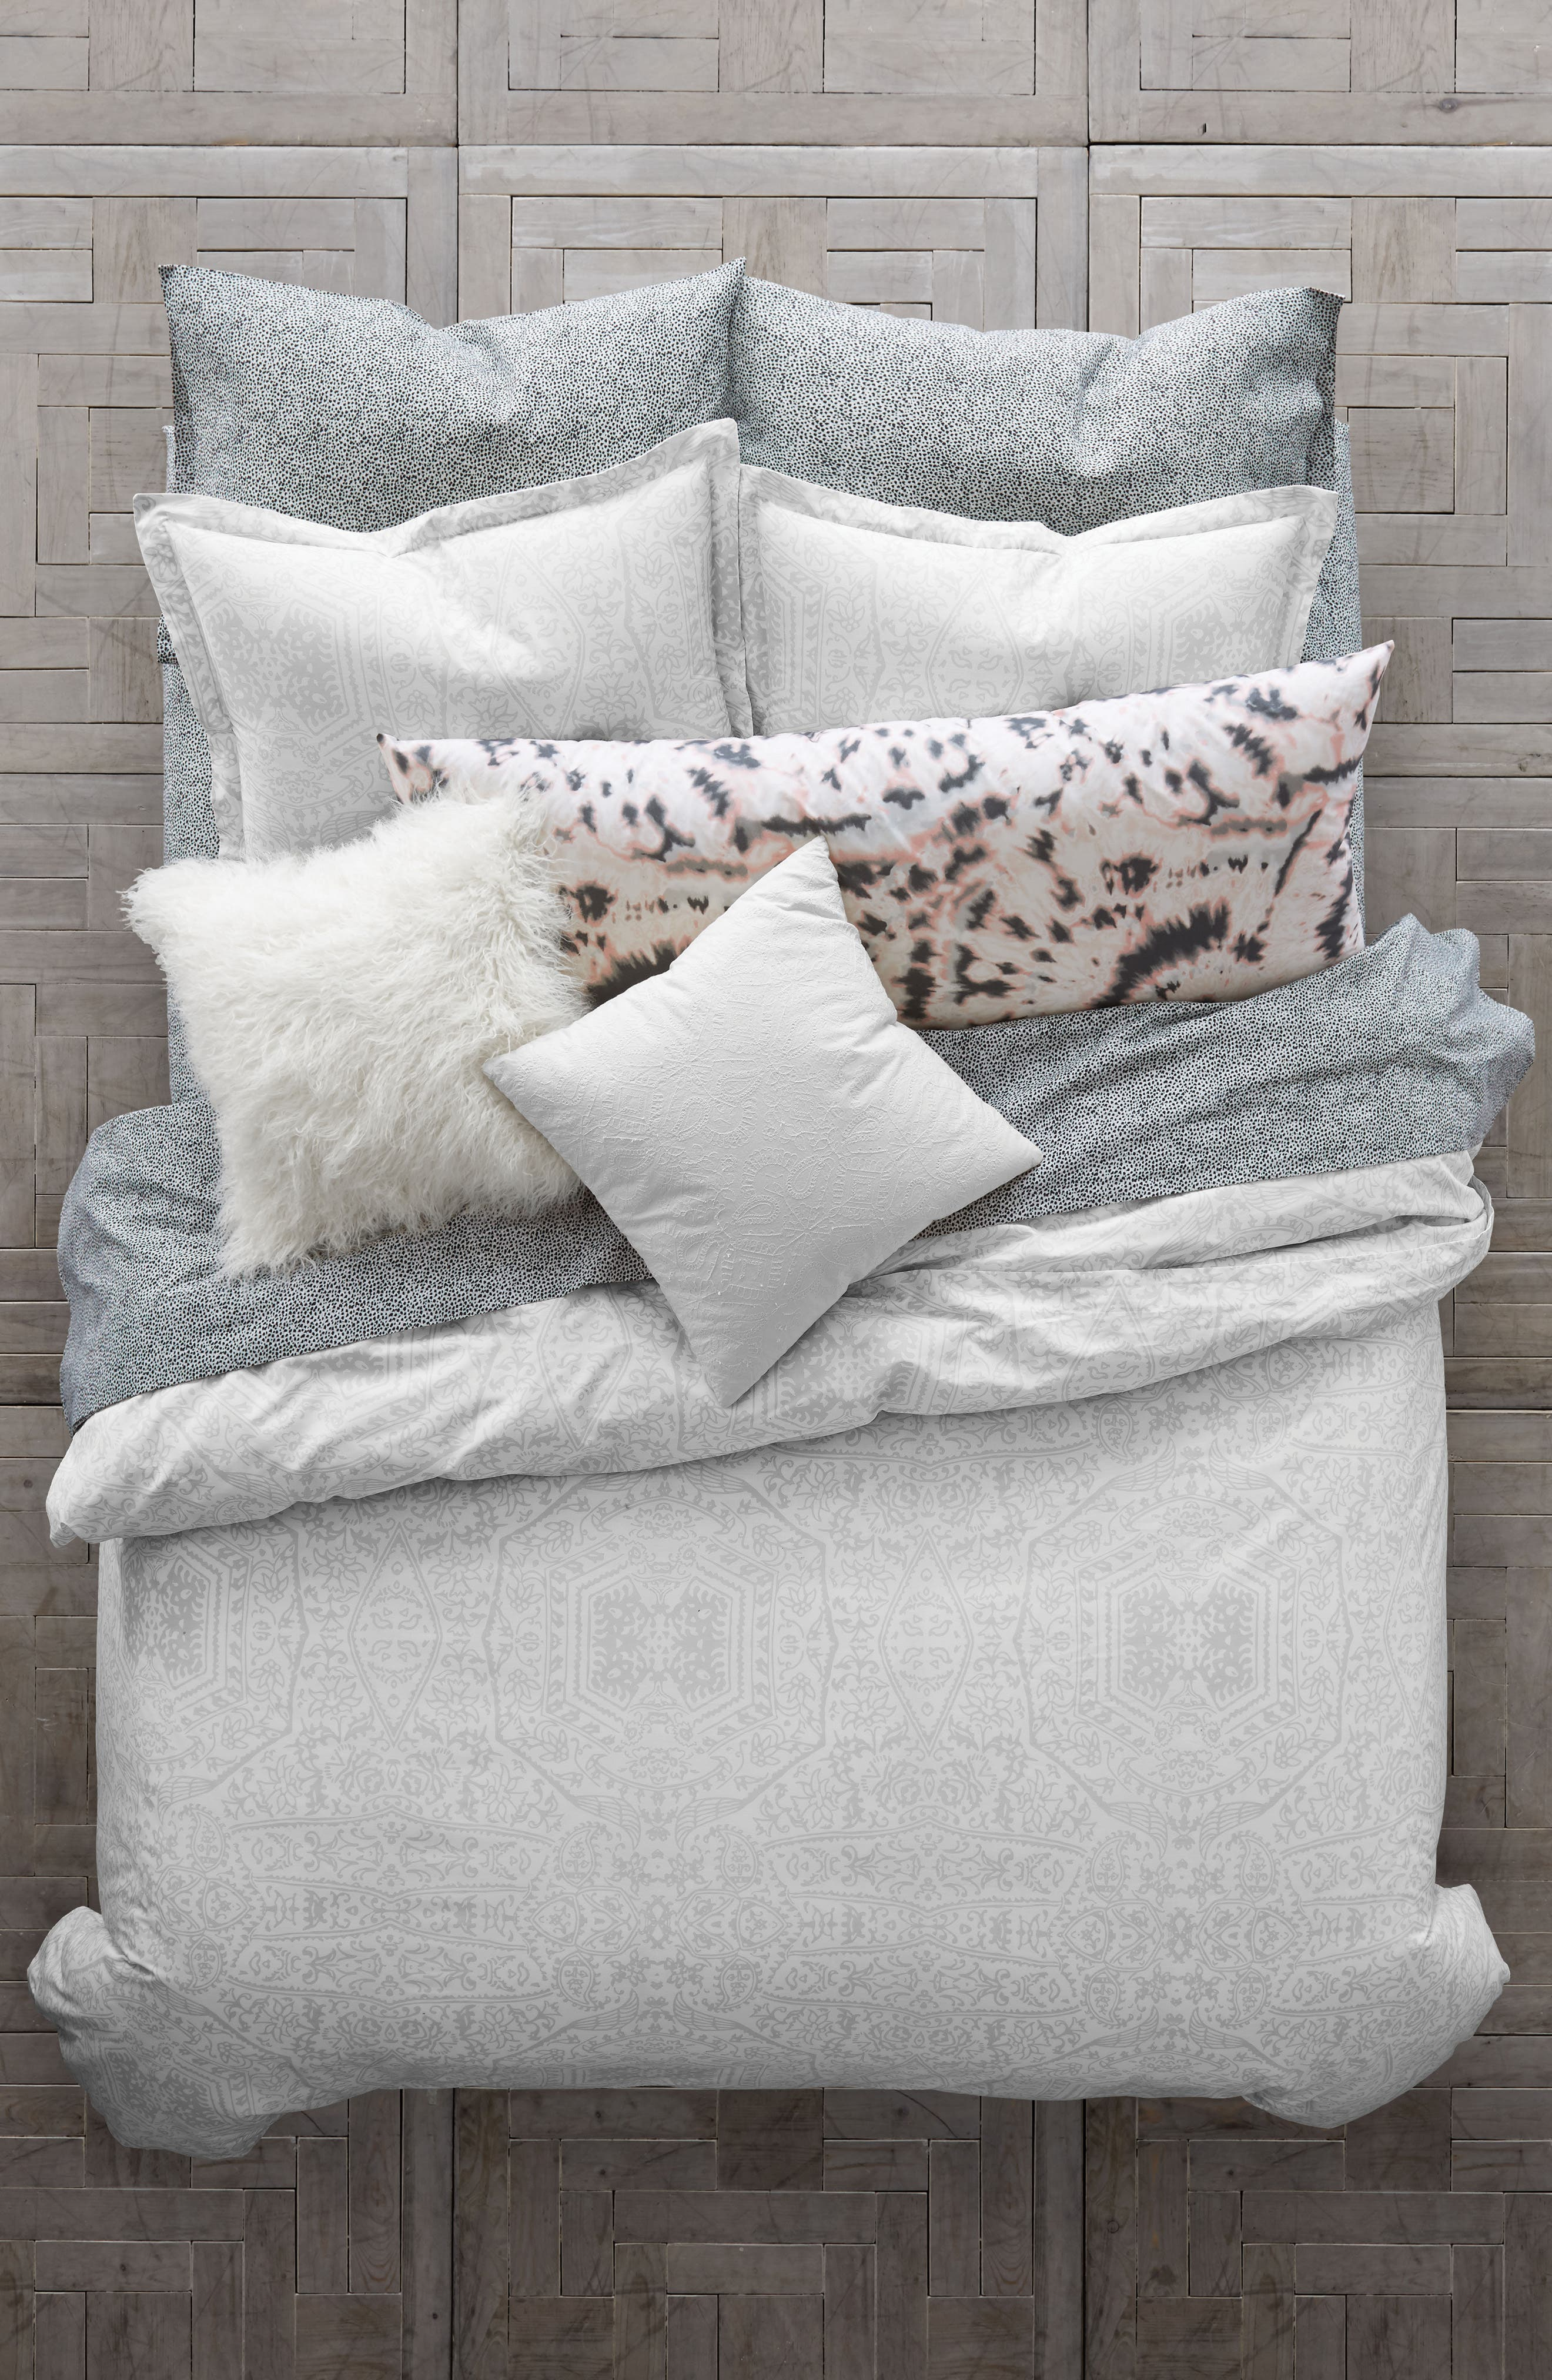 BCBGeneration Chantilly Lace Comforter & Sham Set